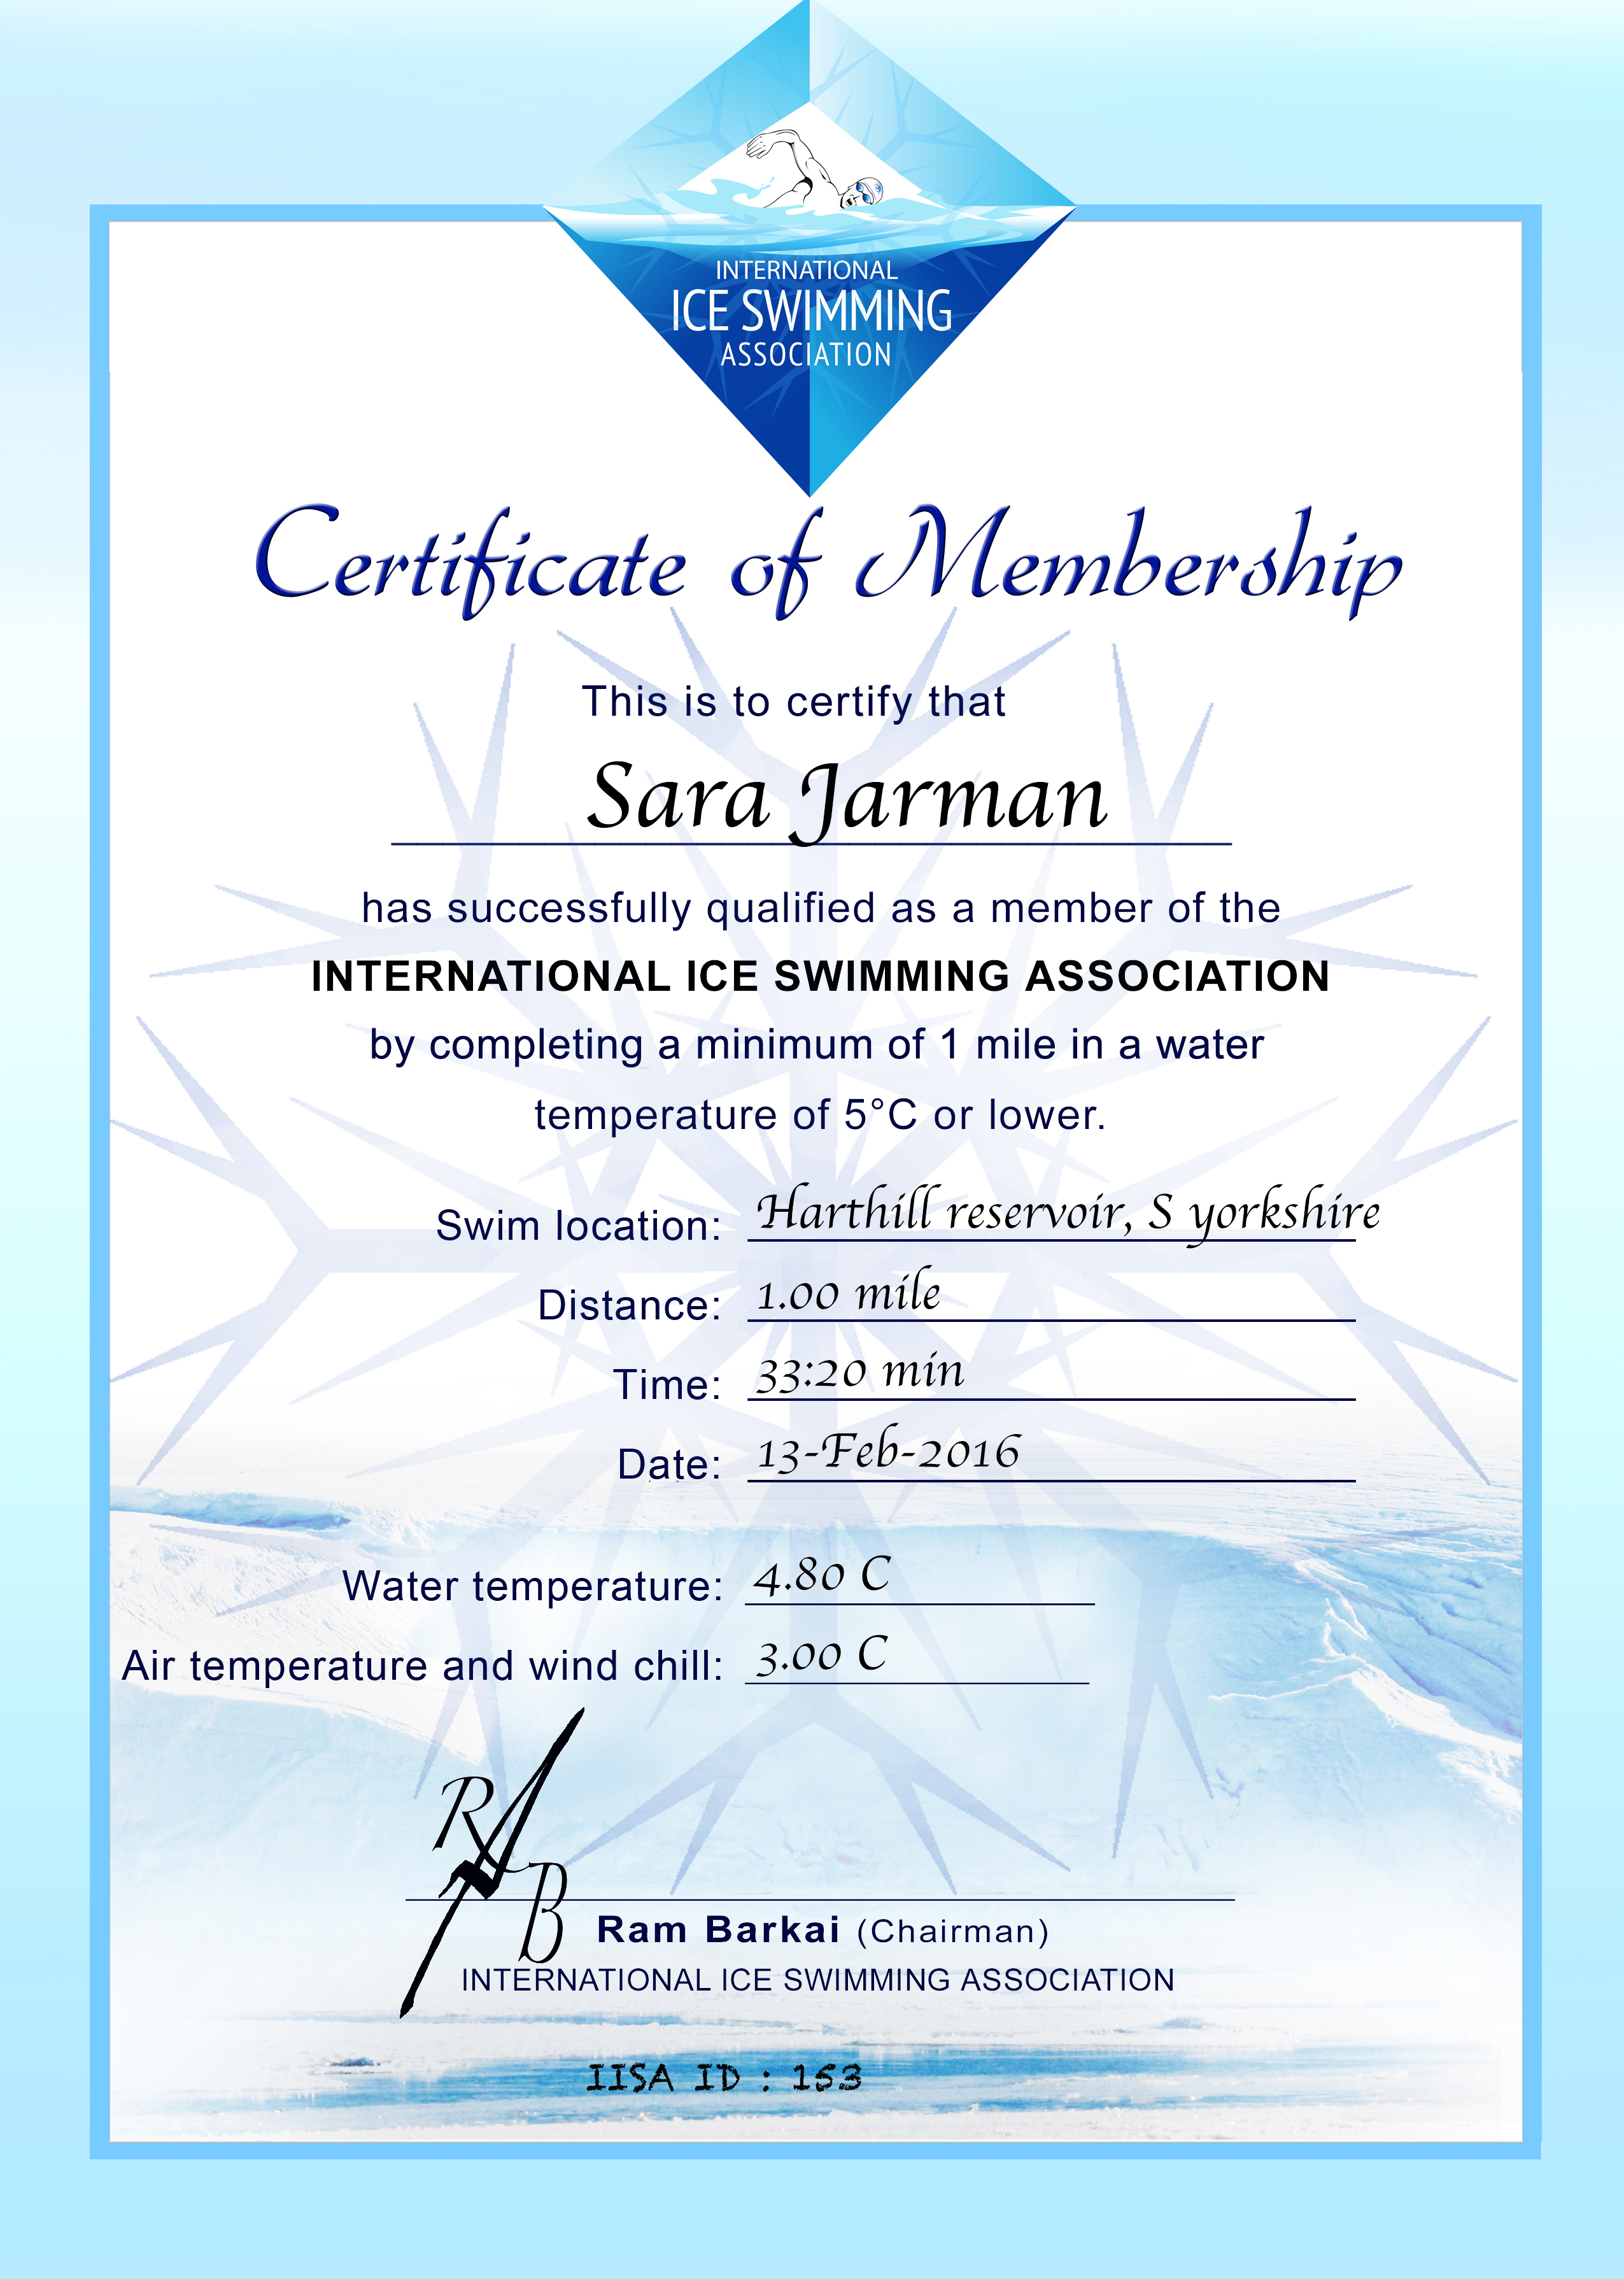 Ice Mile Certificate - Sara Jarman